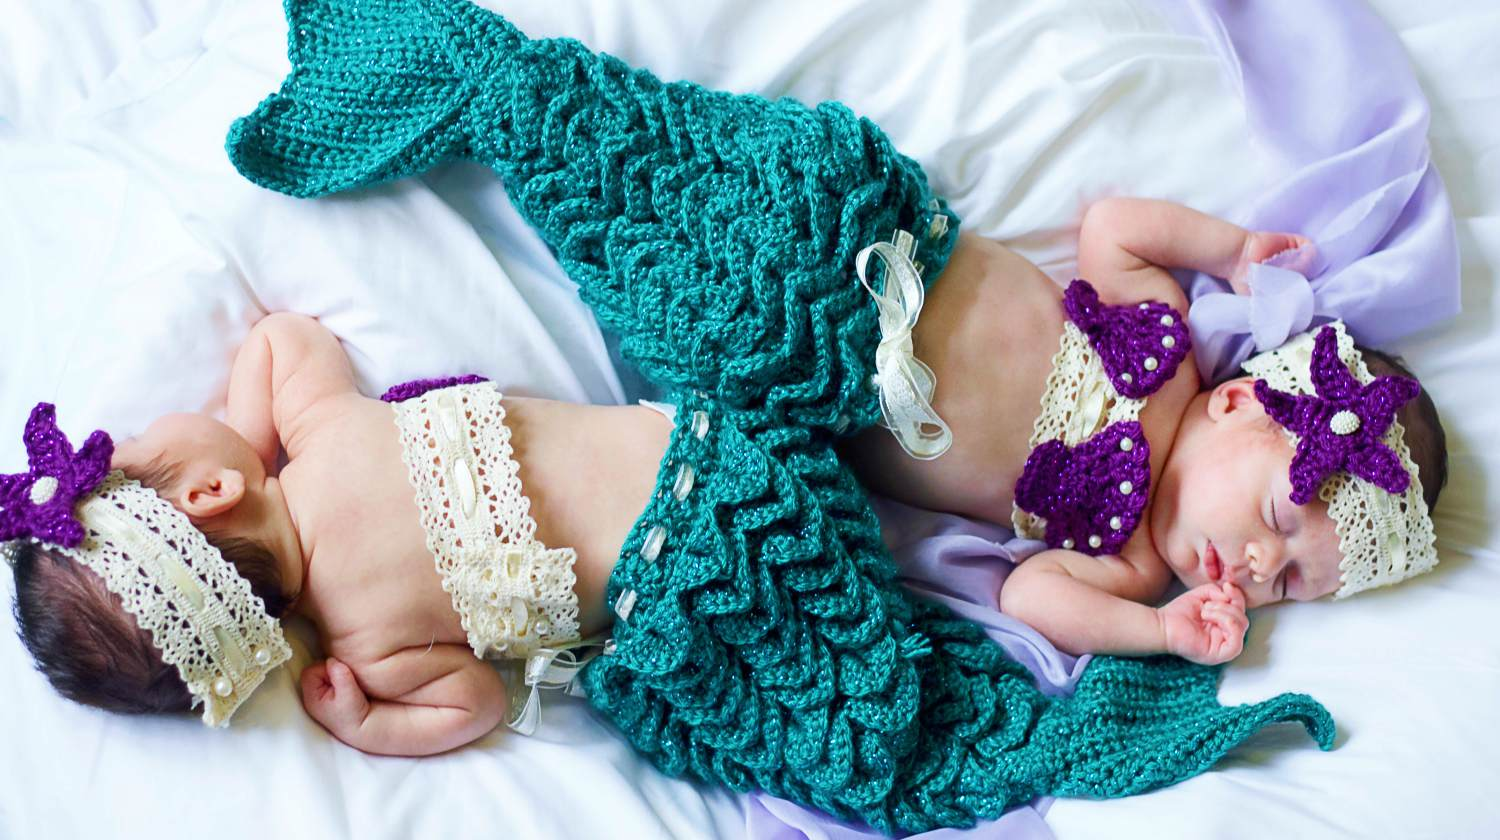 Sleeping twin mermaid girl | Easy DIY Mermaid Tail Crochet Pattern: Perfect Blanket For Winter | Featured